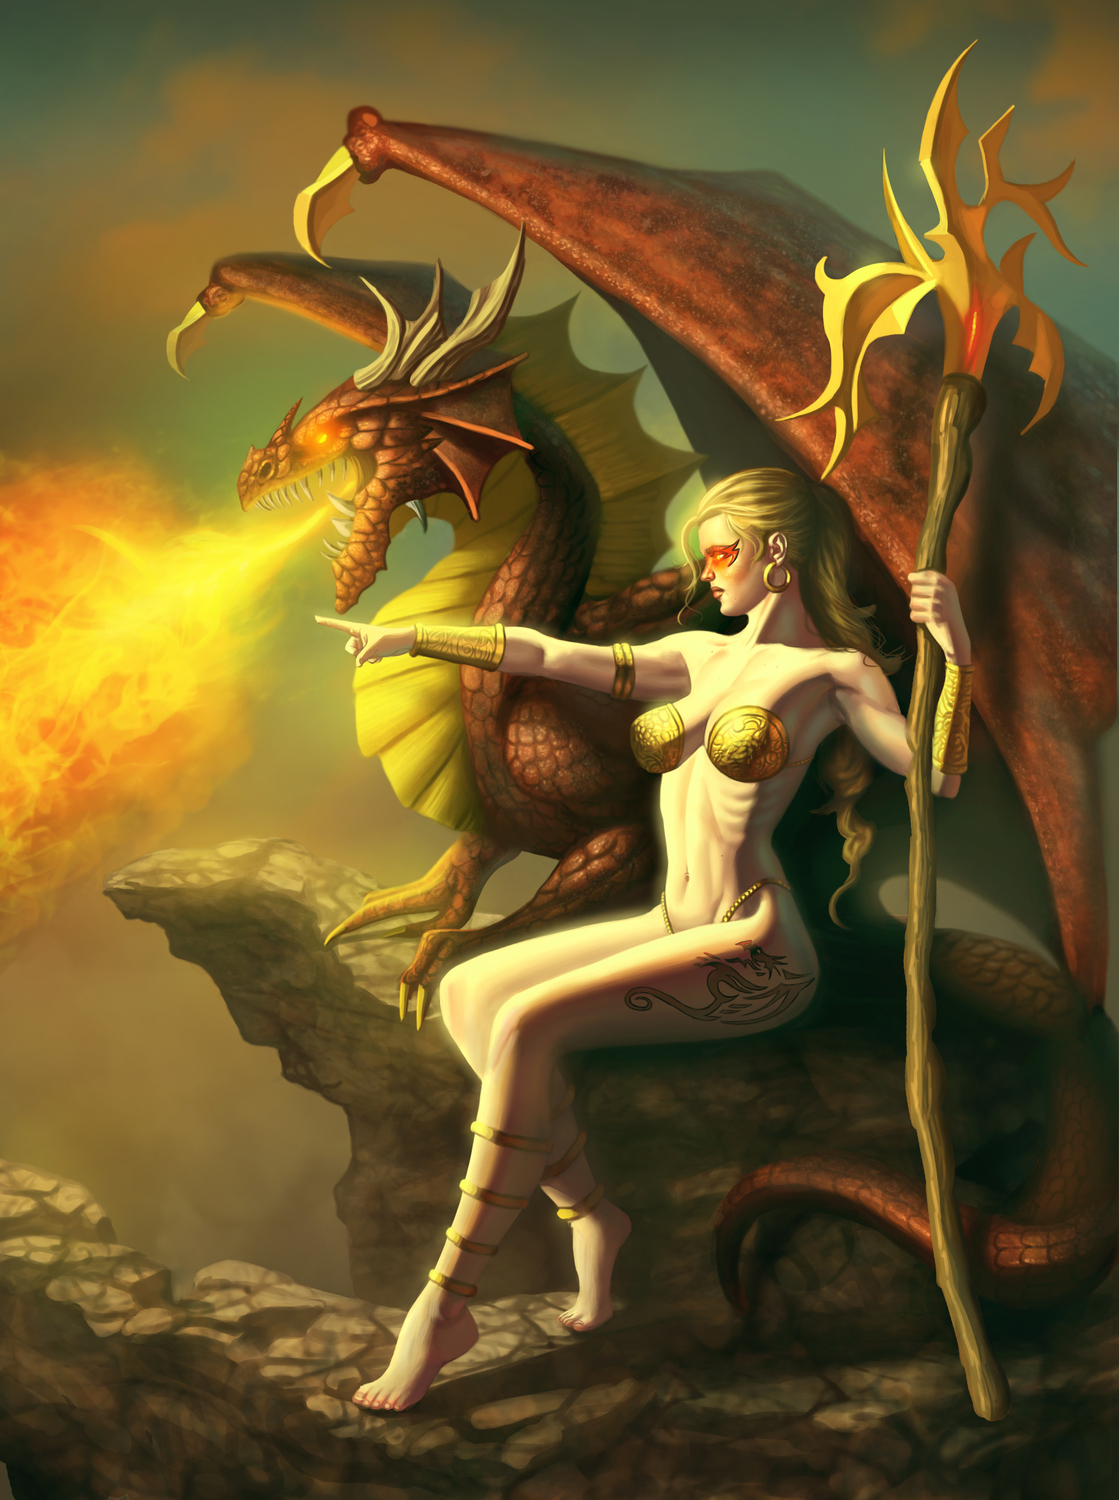 Lady and Dragon Artwork by George Patsouras